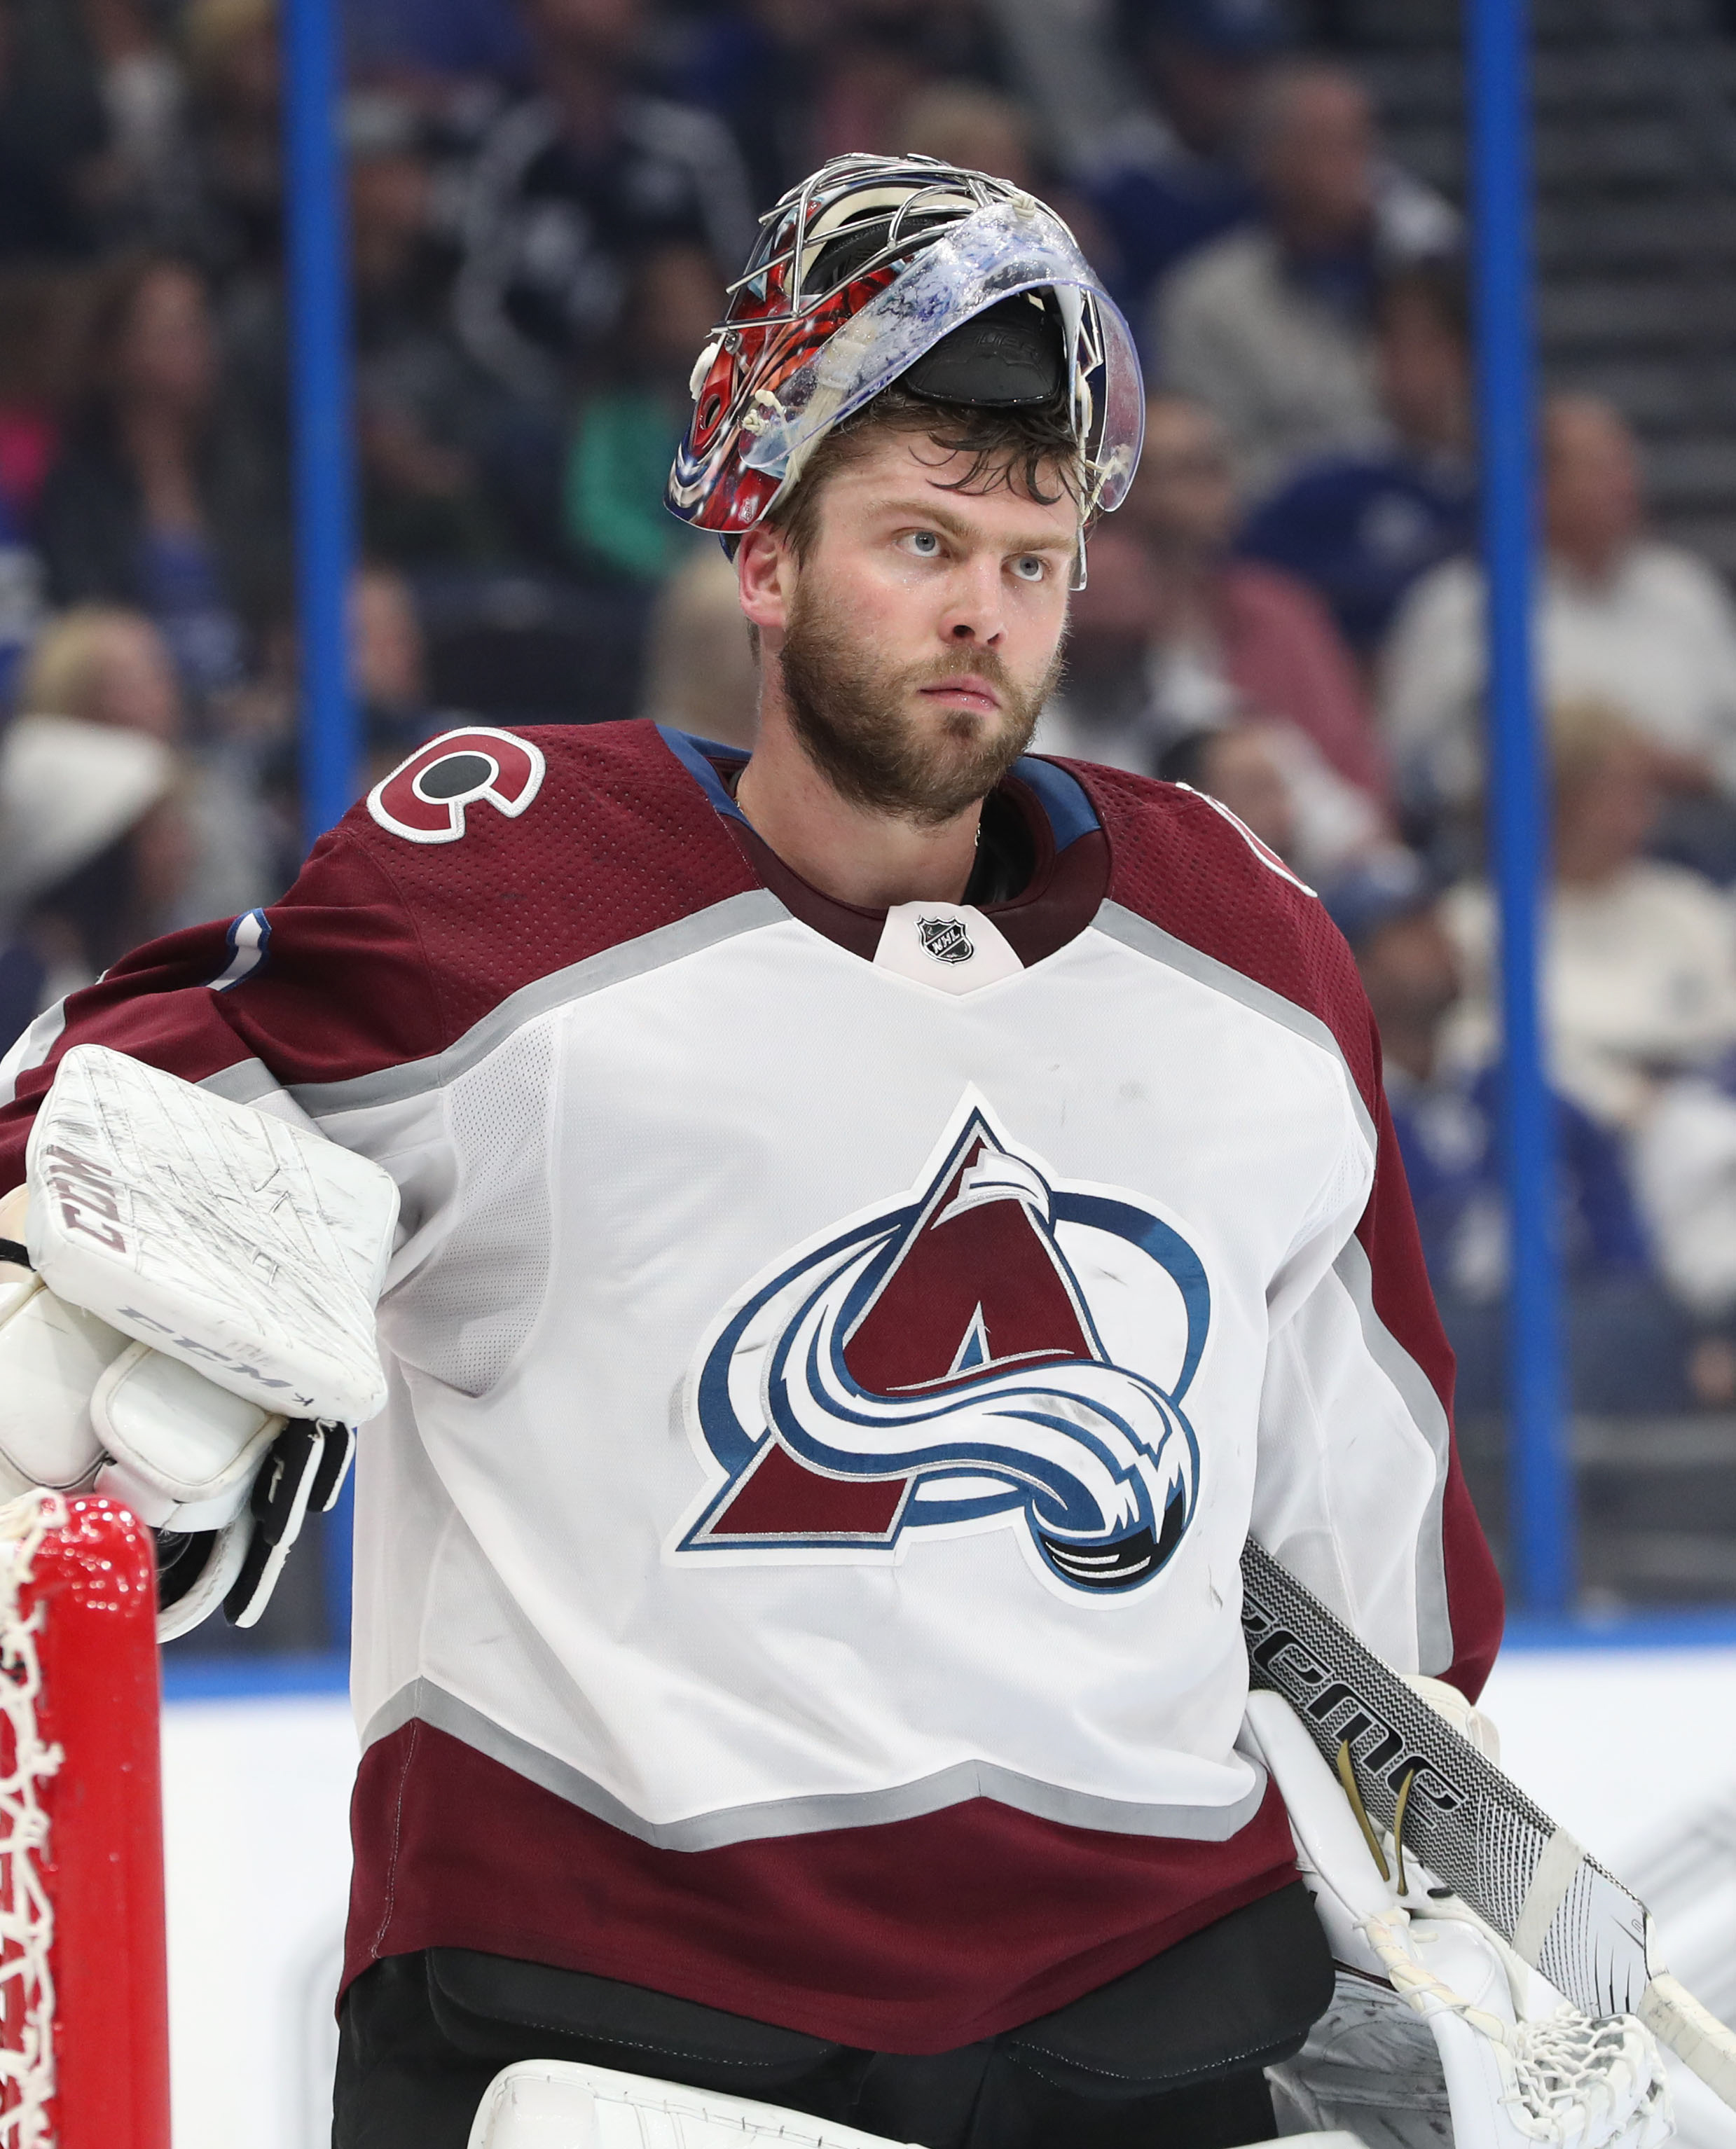 c61dbae3e However, among current assets, the team could consider moving some of their  unrestricted free agents like Colin Wilson and Patrik Nemeth, two players  who ...